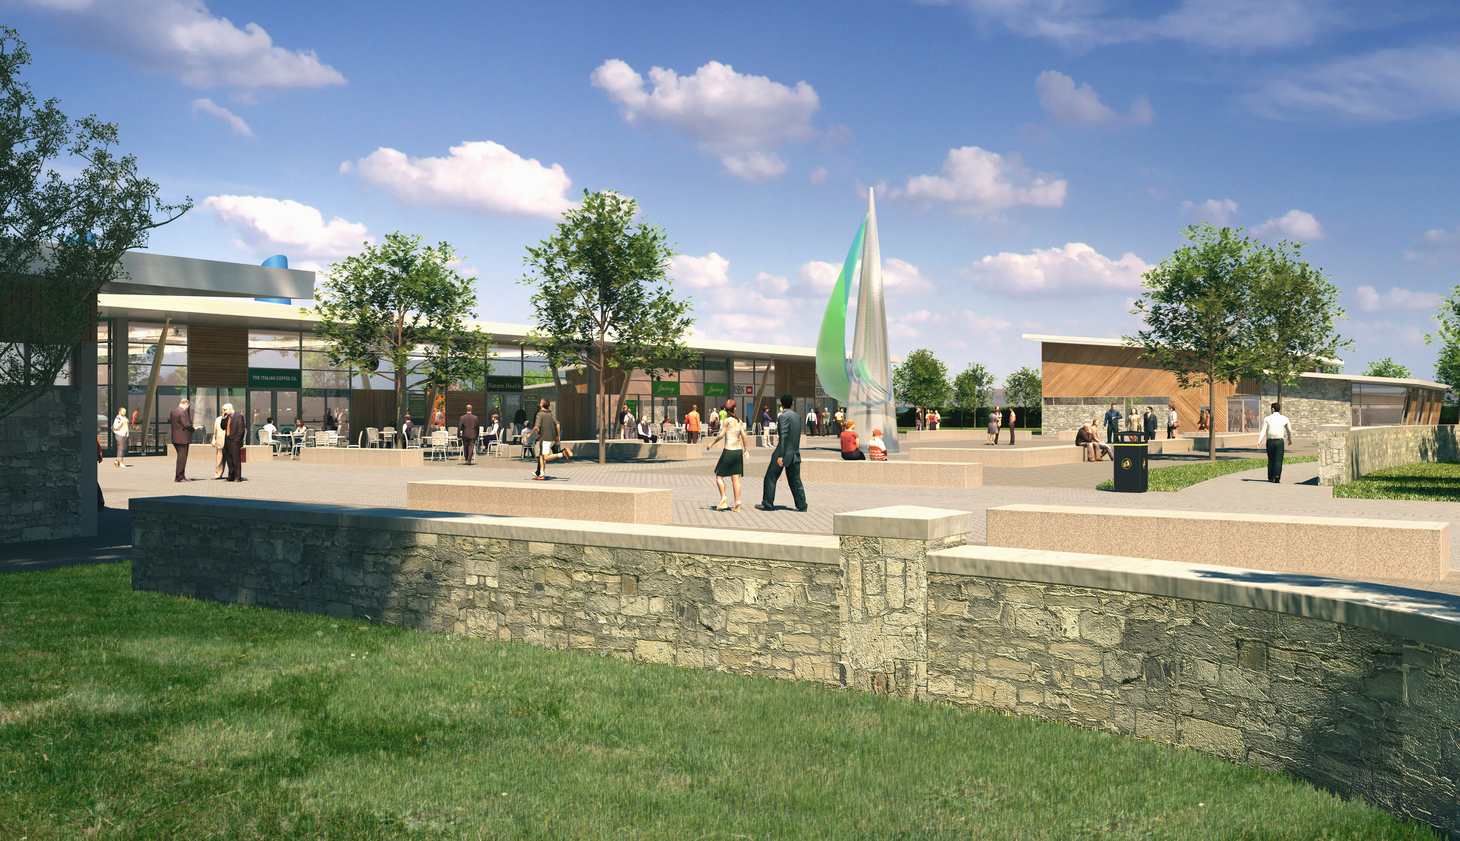 Retail-Led Mixed Use Development, Dores Road image